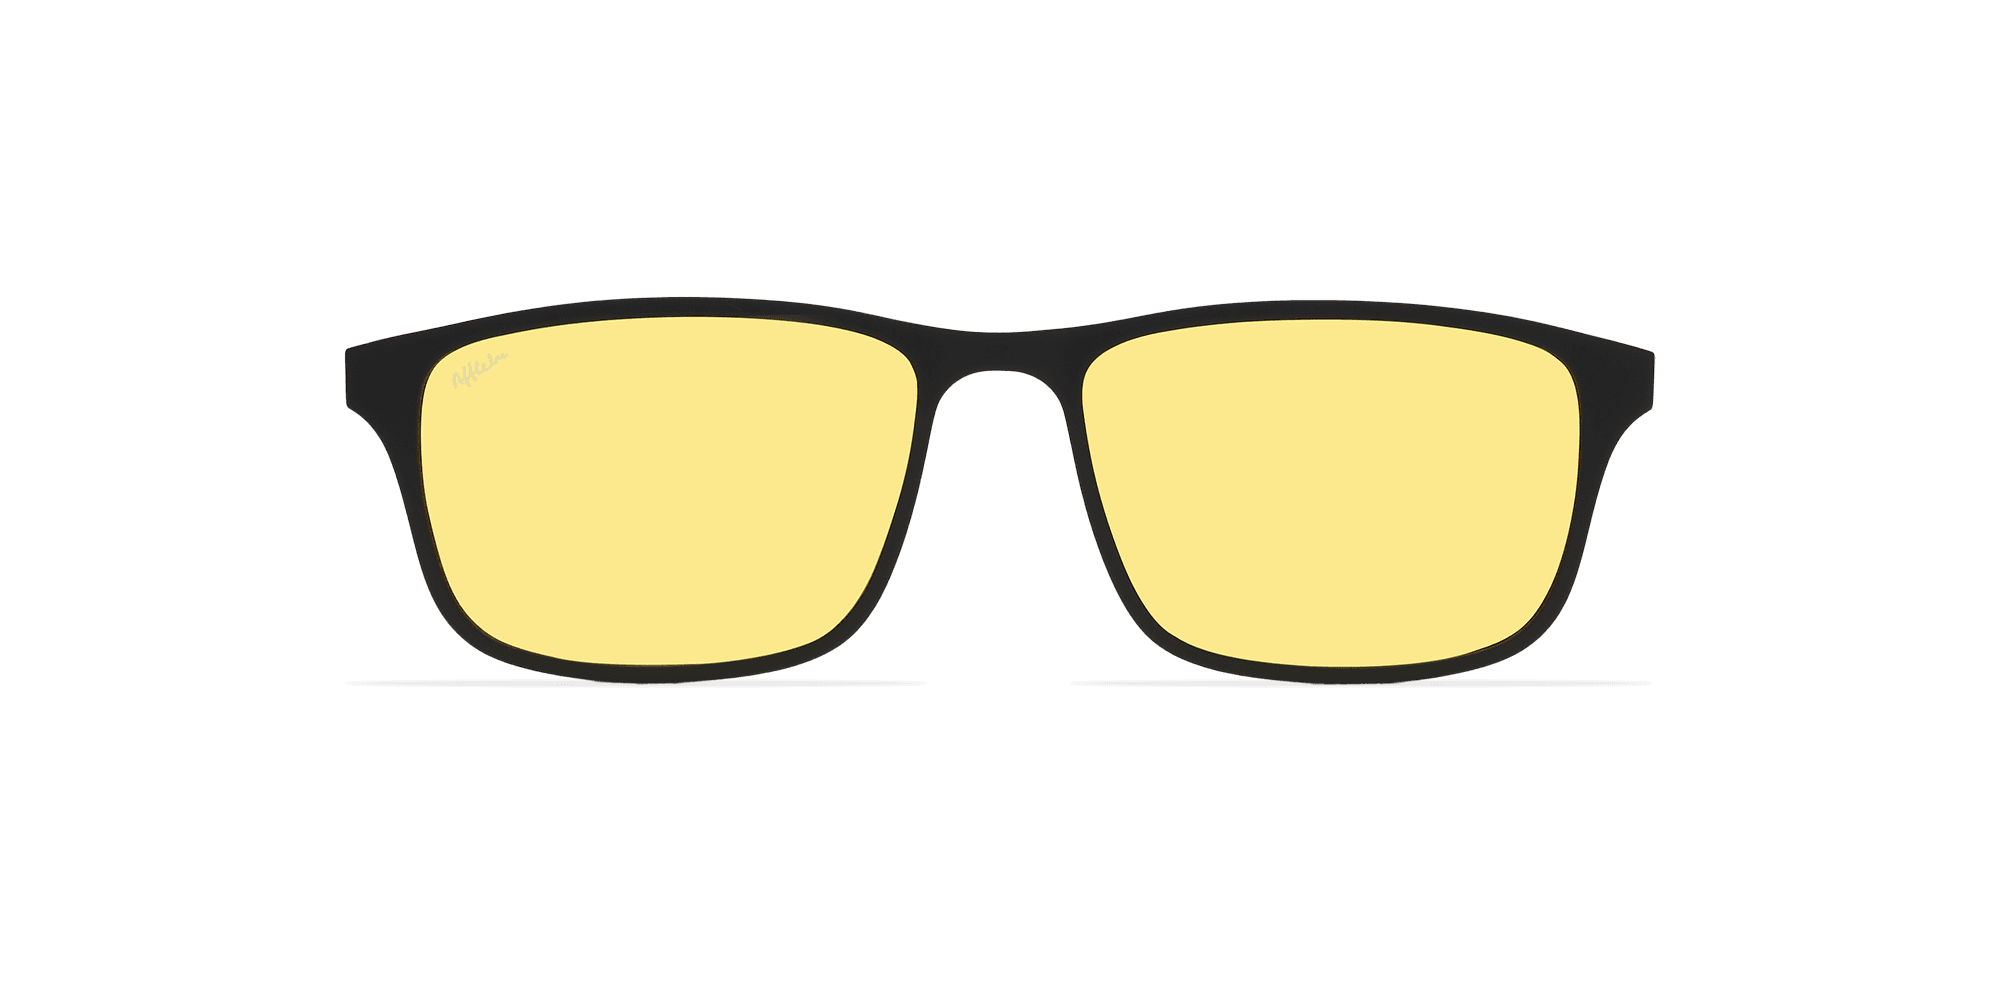 afflelou/france/products/smart_clip/clips_glasses/TMK41YEBK015416.png